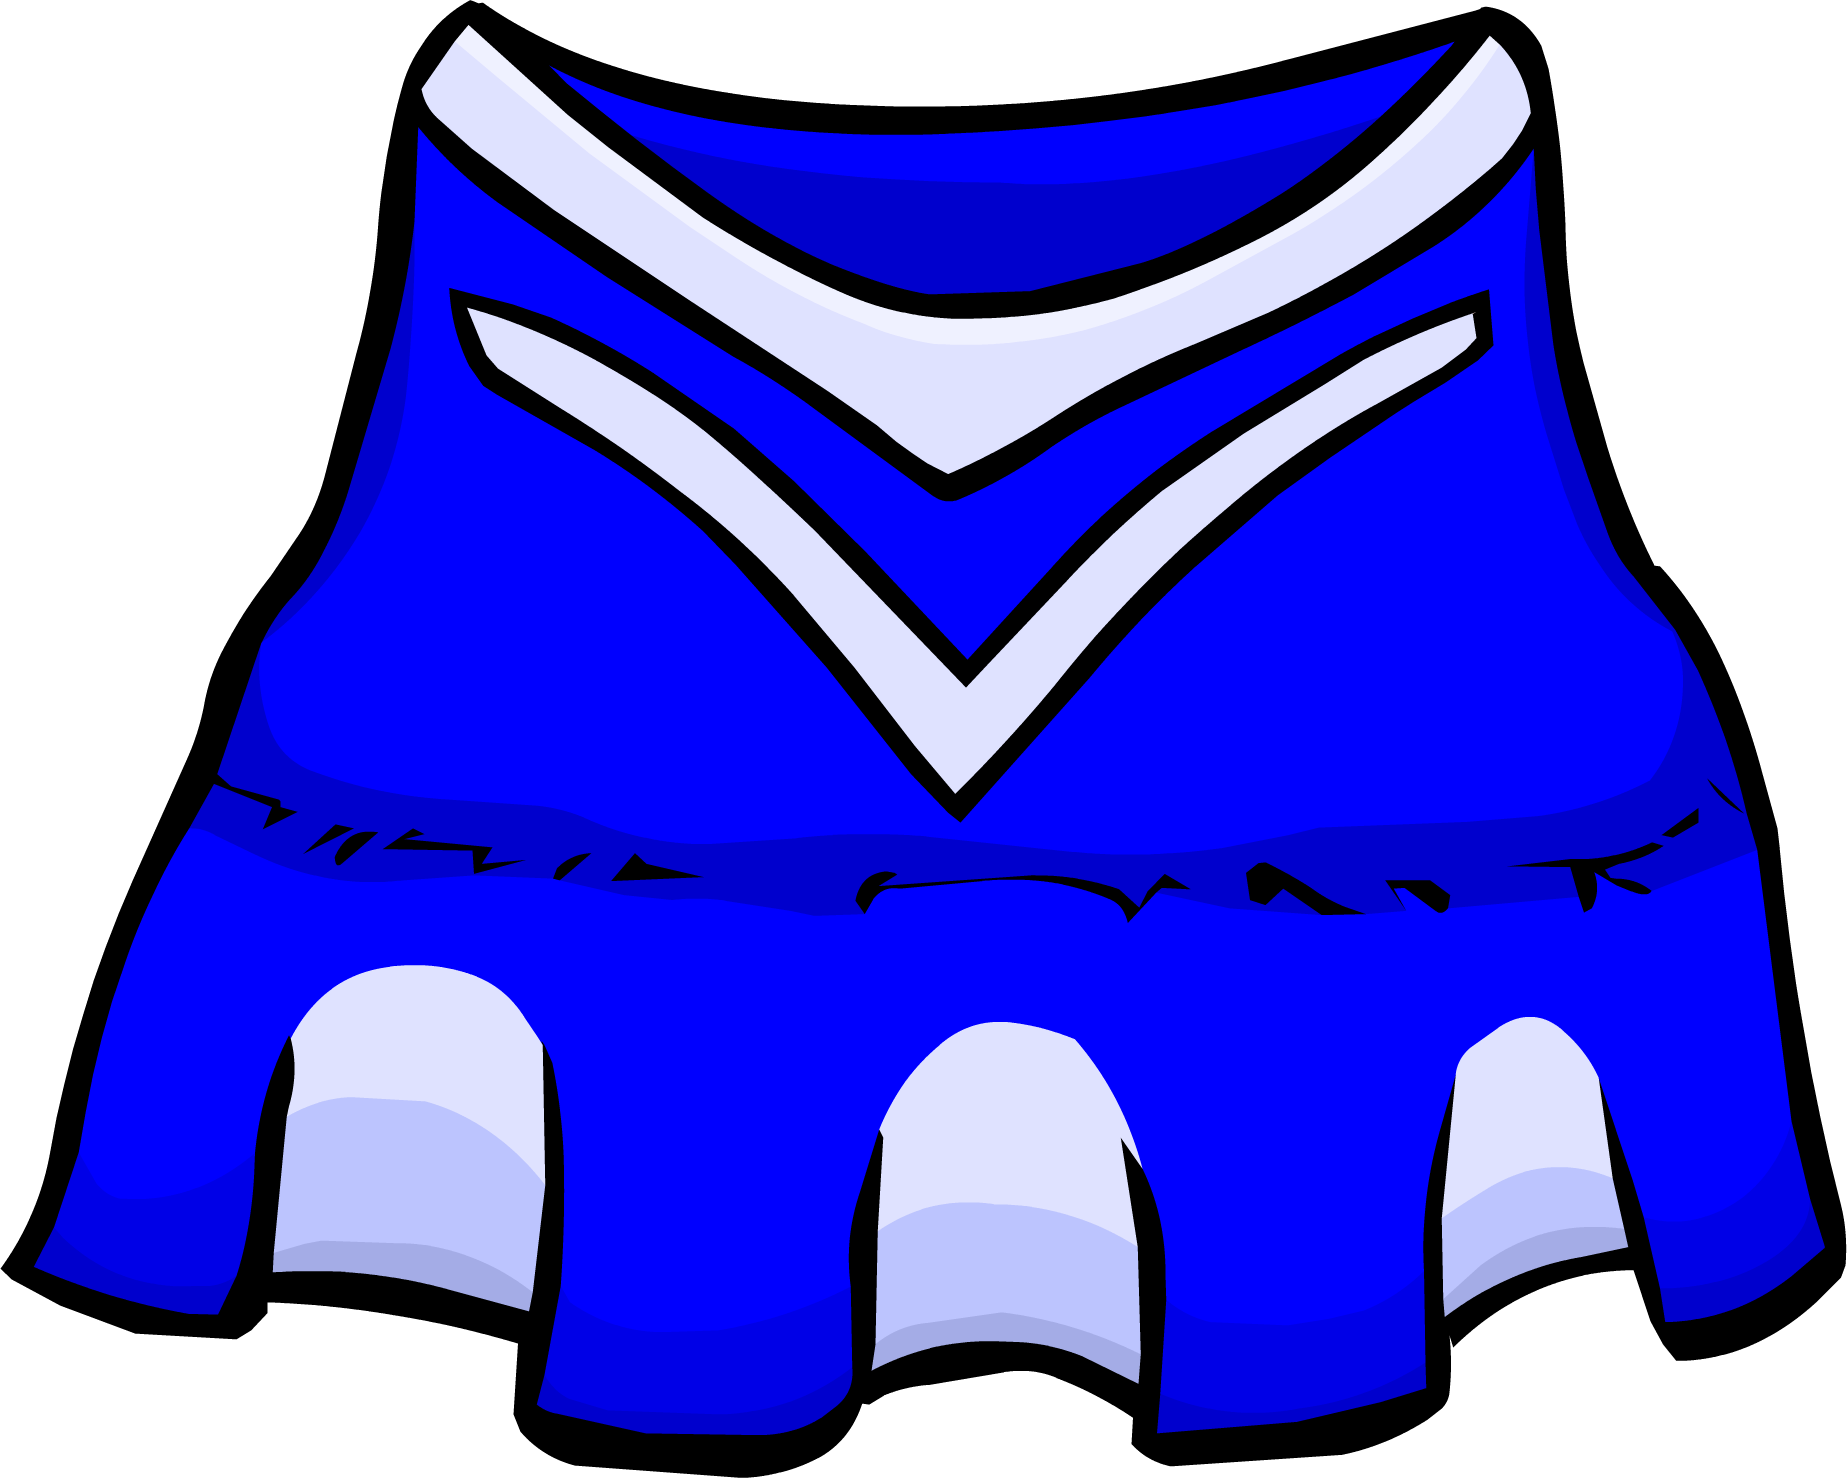 Blue Cheerleader Outfit